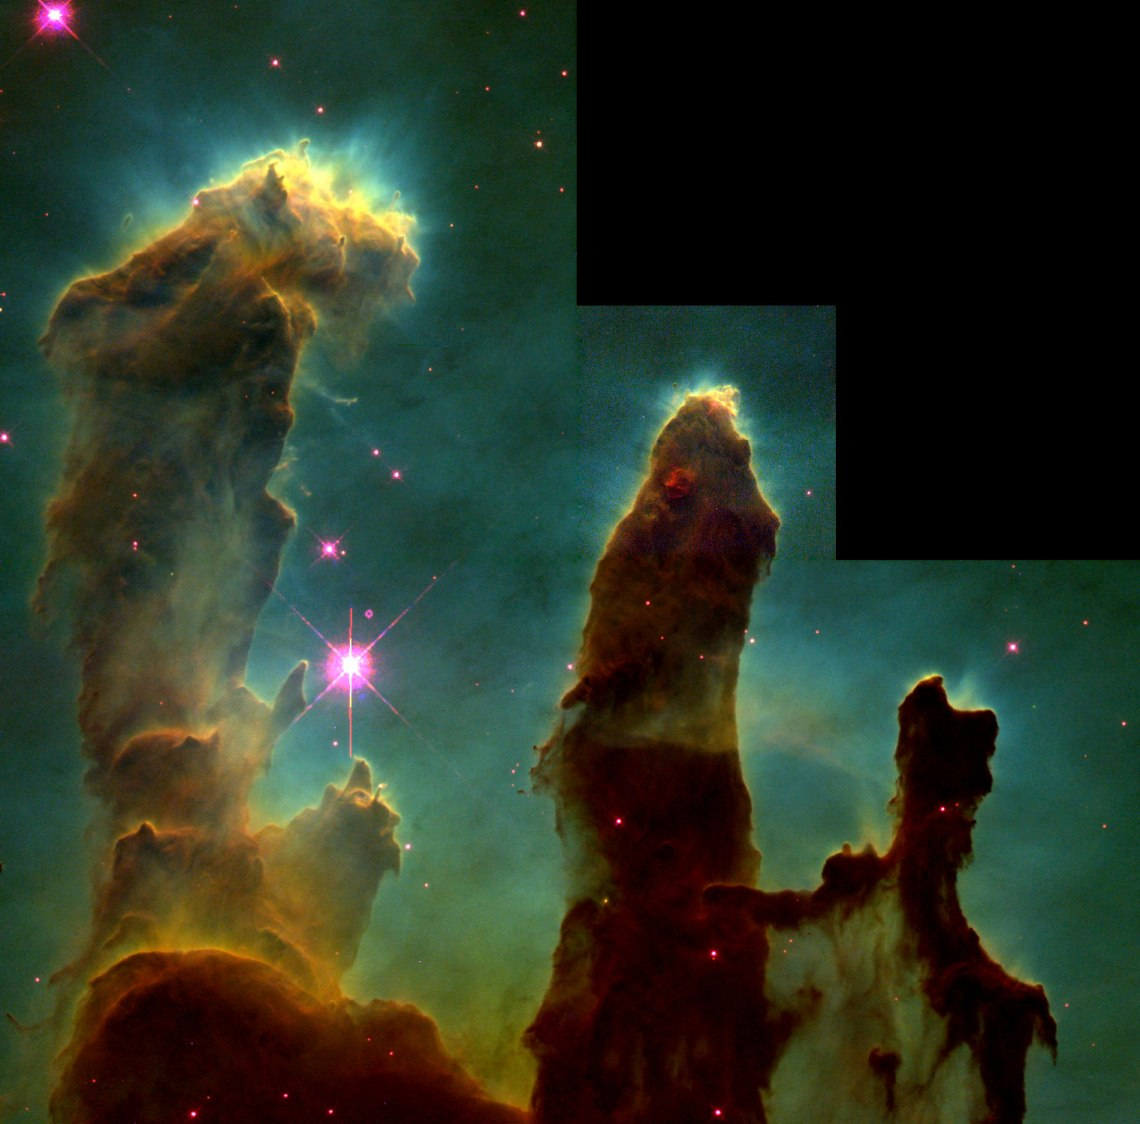 Inside the Eagle Nebula stand the Pillars of Creation portrayed in the Hubble Palette as captured by the Hubble Space Telescope.  Credit: NASA/ESA/STScI/J. Hester and P. Scowen (Arizona State University)